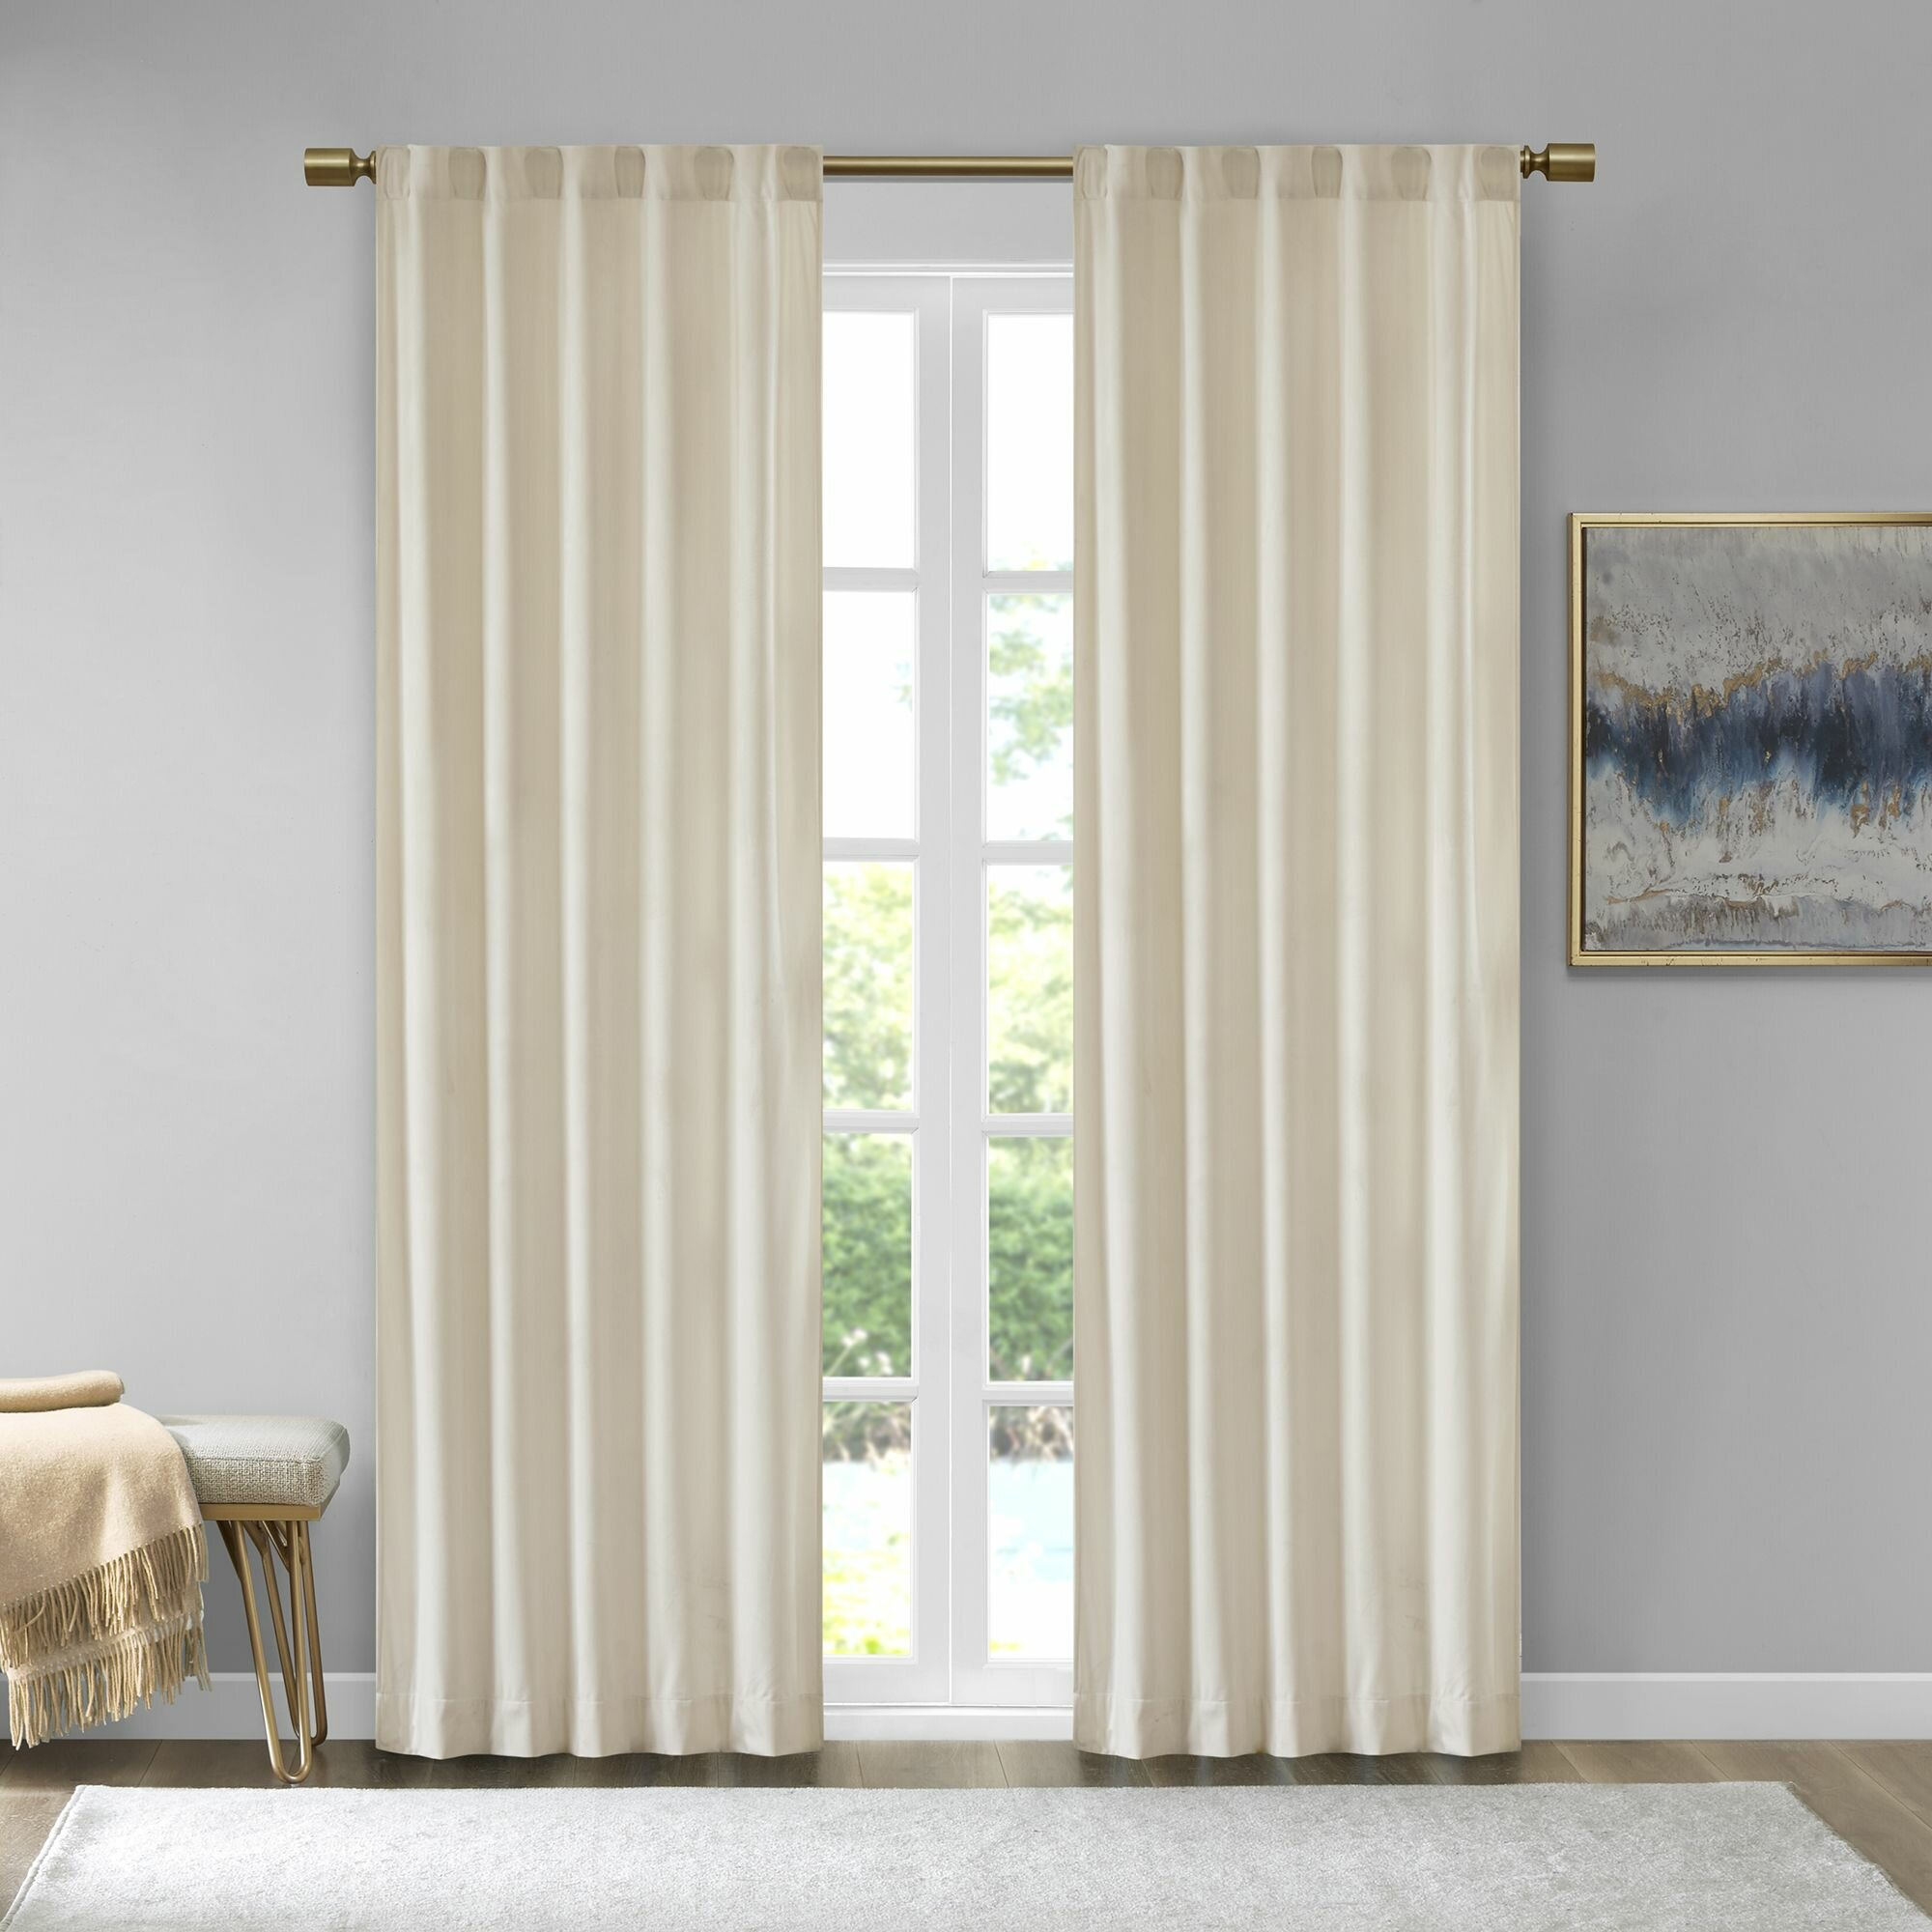 Aurora Poly Velvet Solid Room Darkening Rod Pocket/tab Top Curtain Panels With Regard To Knotted Tab Top Window Curtain Panel Pairs (View 18 of 20)